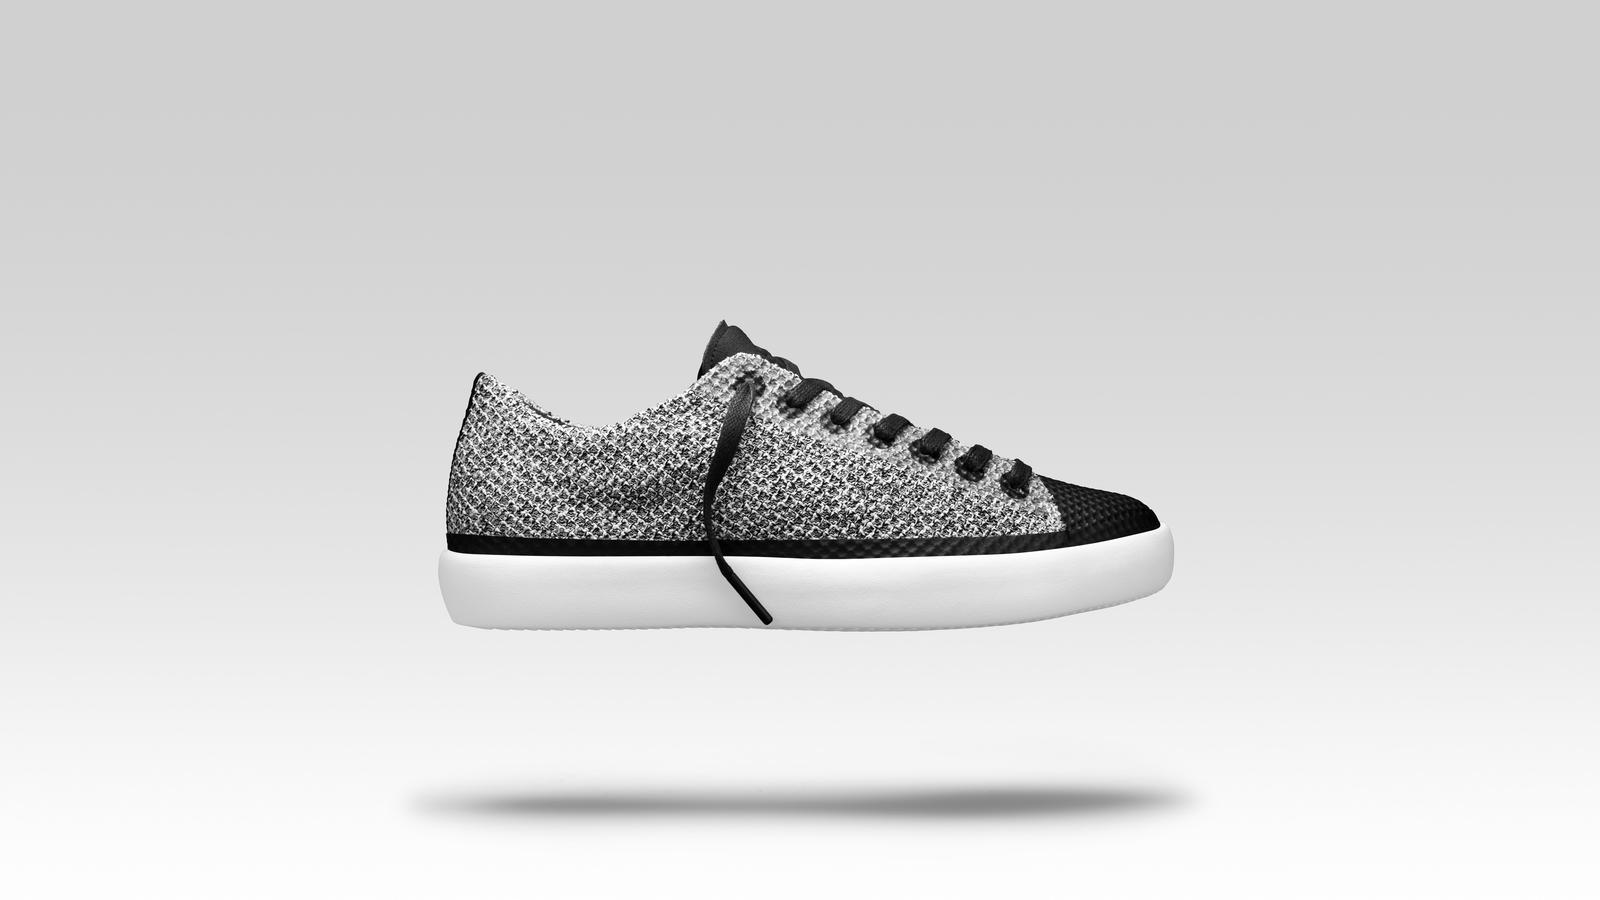 0795c1c0b8fb CONVERSE UNVEILS THE ALL STAR MODERN SNEAKER INSPIRED BY THE 1920 ...